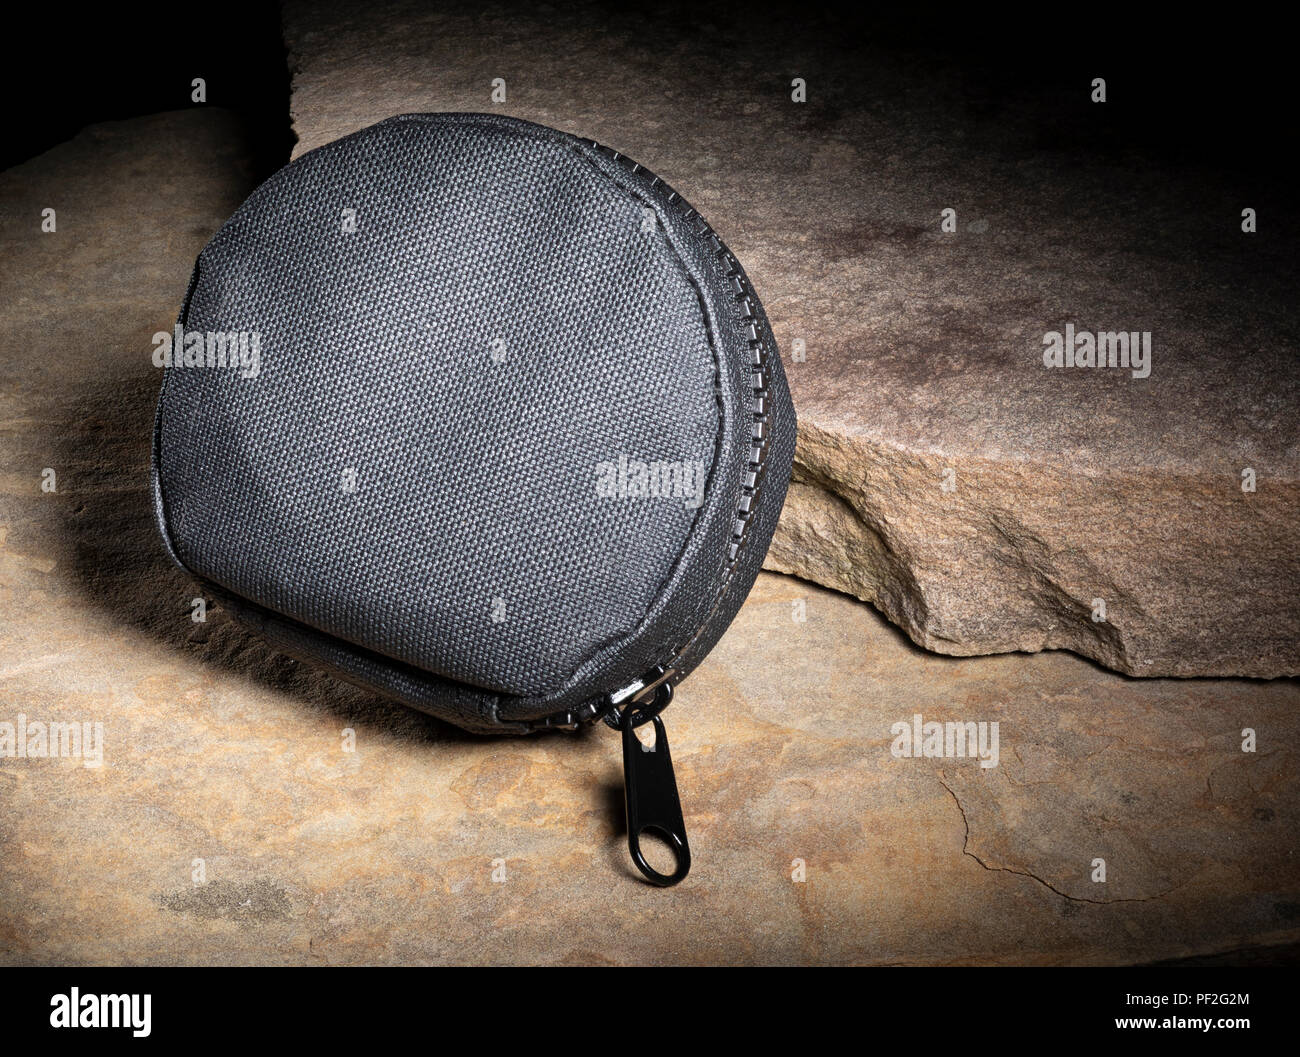 Zippered black tactical pouch on a pair of rocks - Stock Image